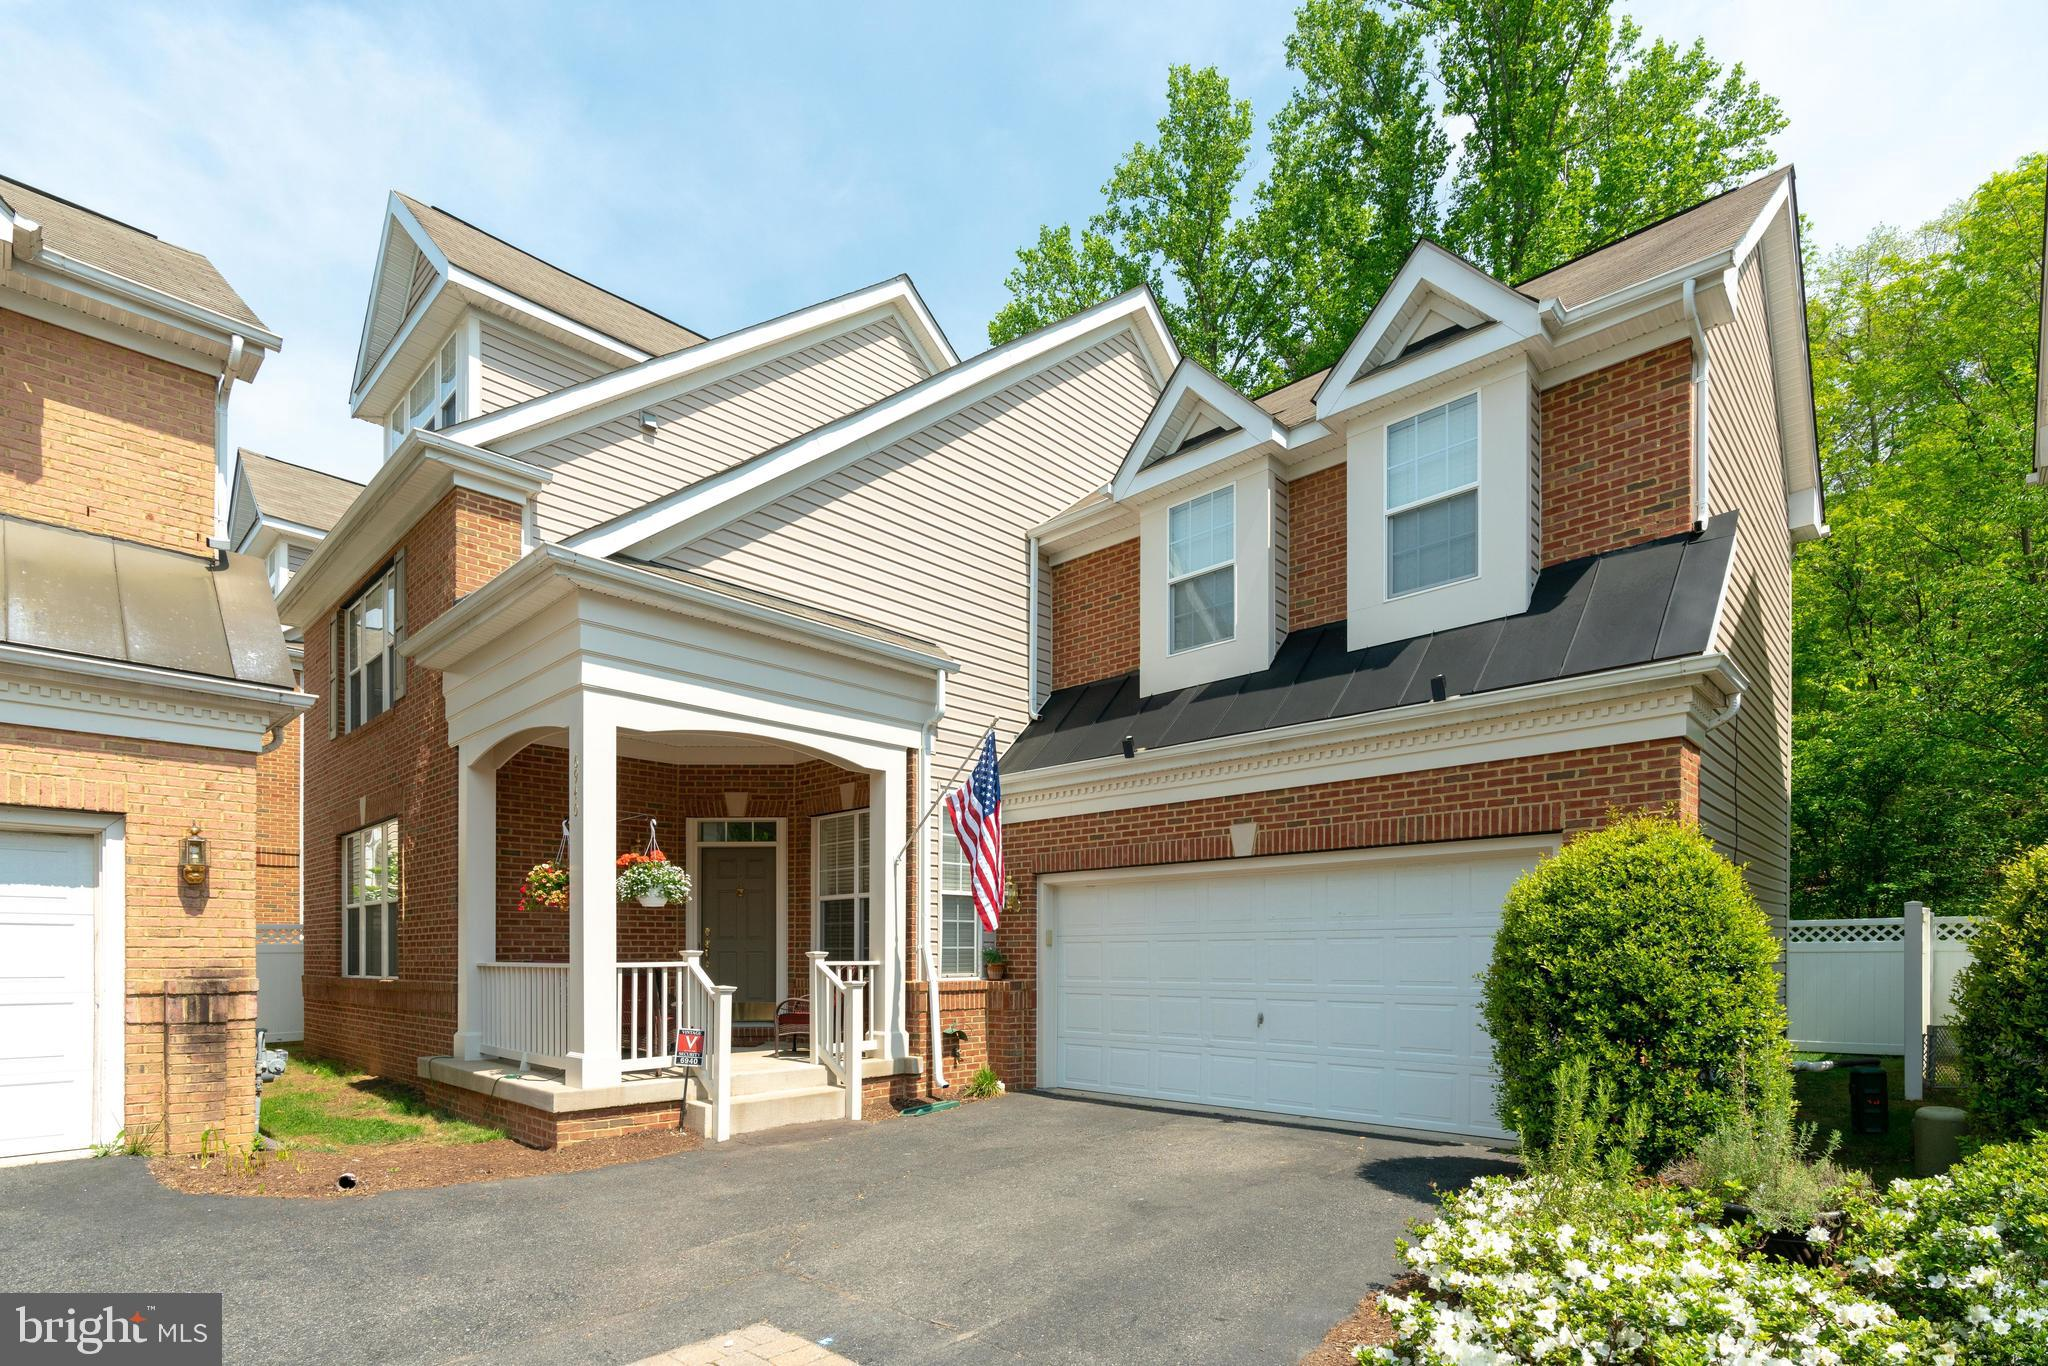 6940 Repose Pl, Fort Belvoir, VA, 22060